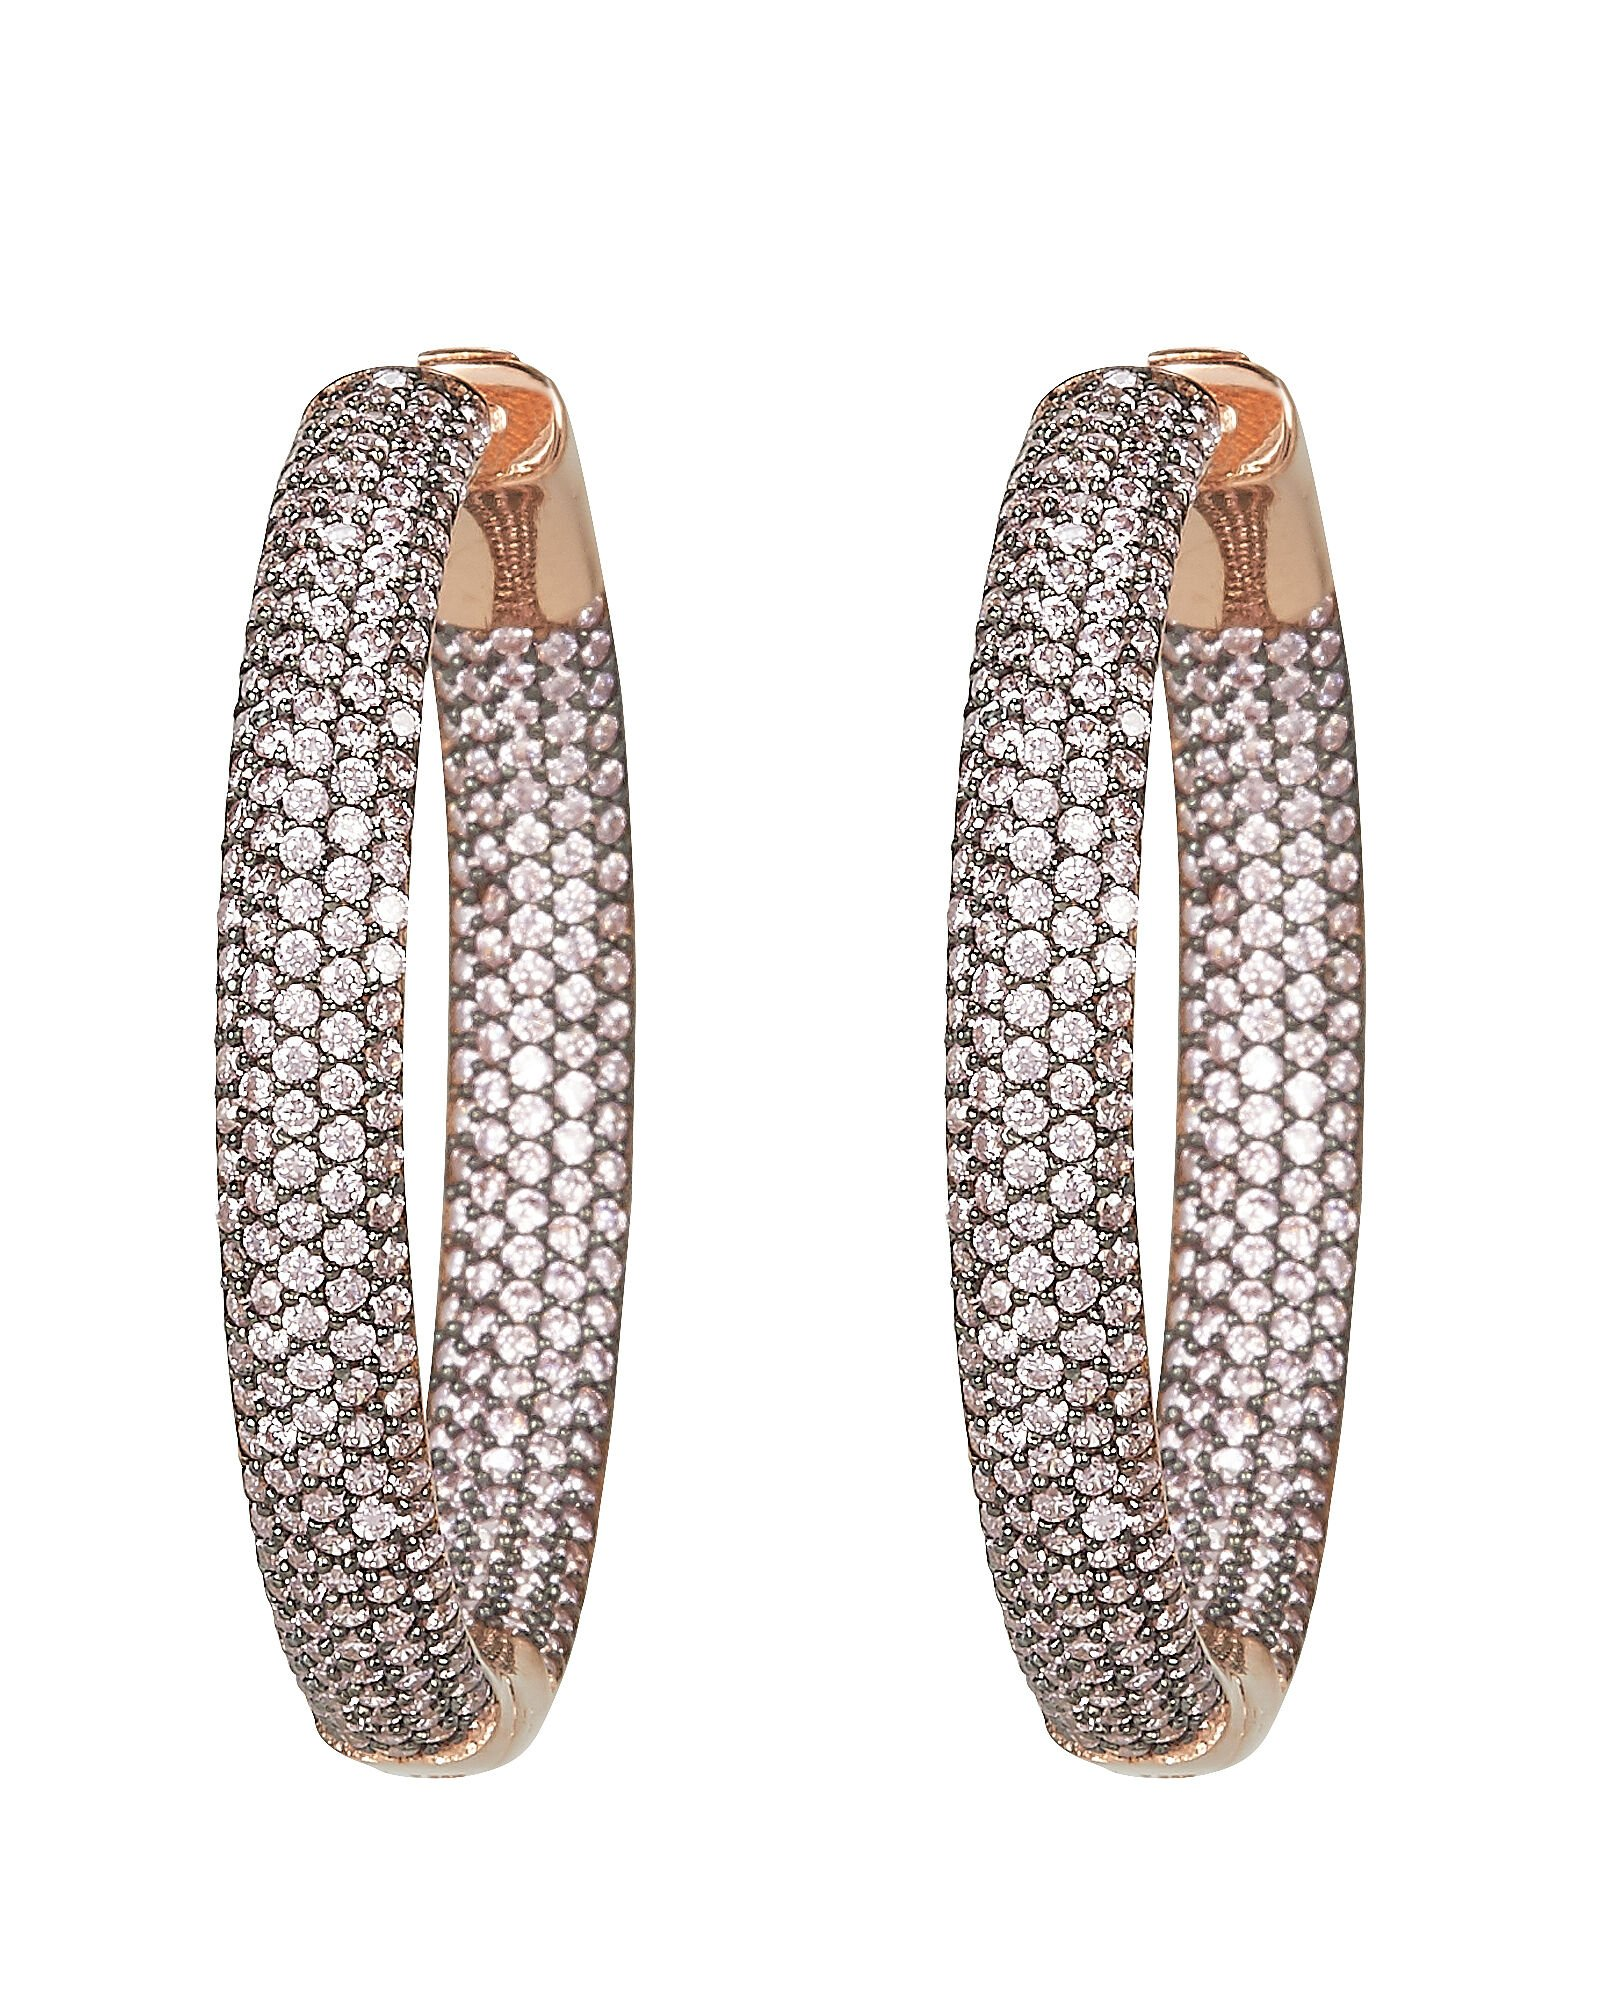 Tire Crystal Embellished Hoop Earrings, GOLD, hi-res